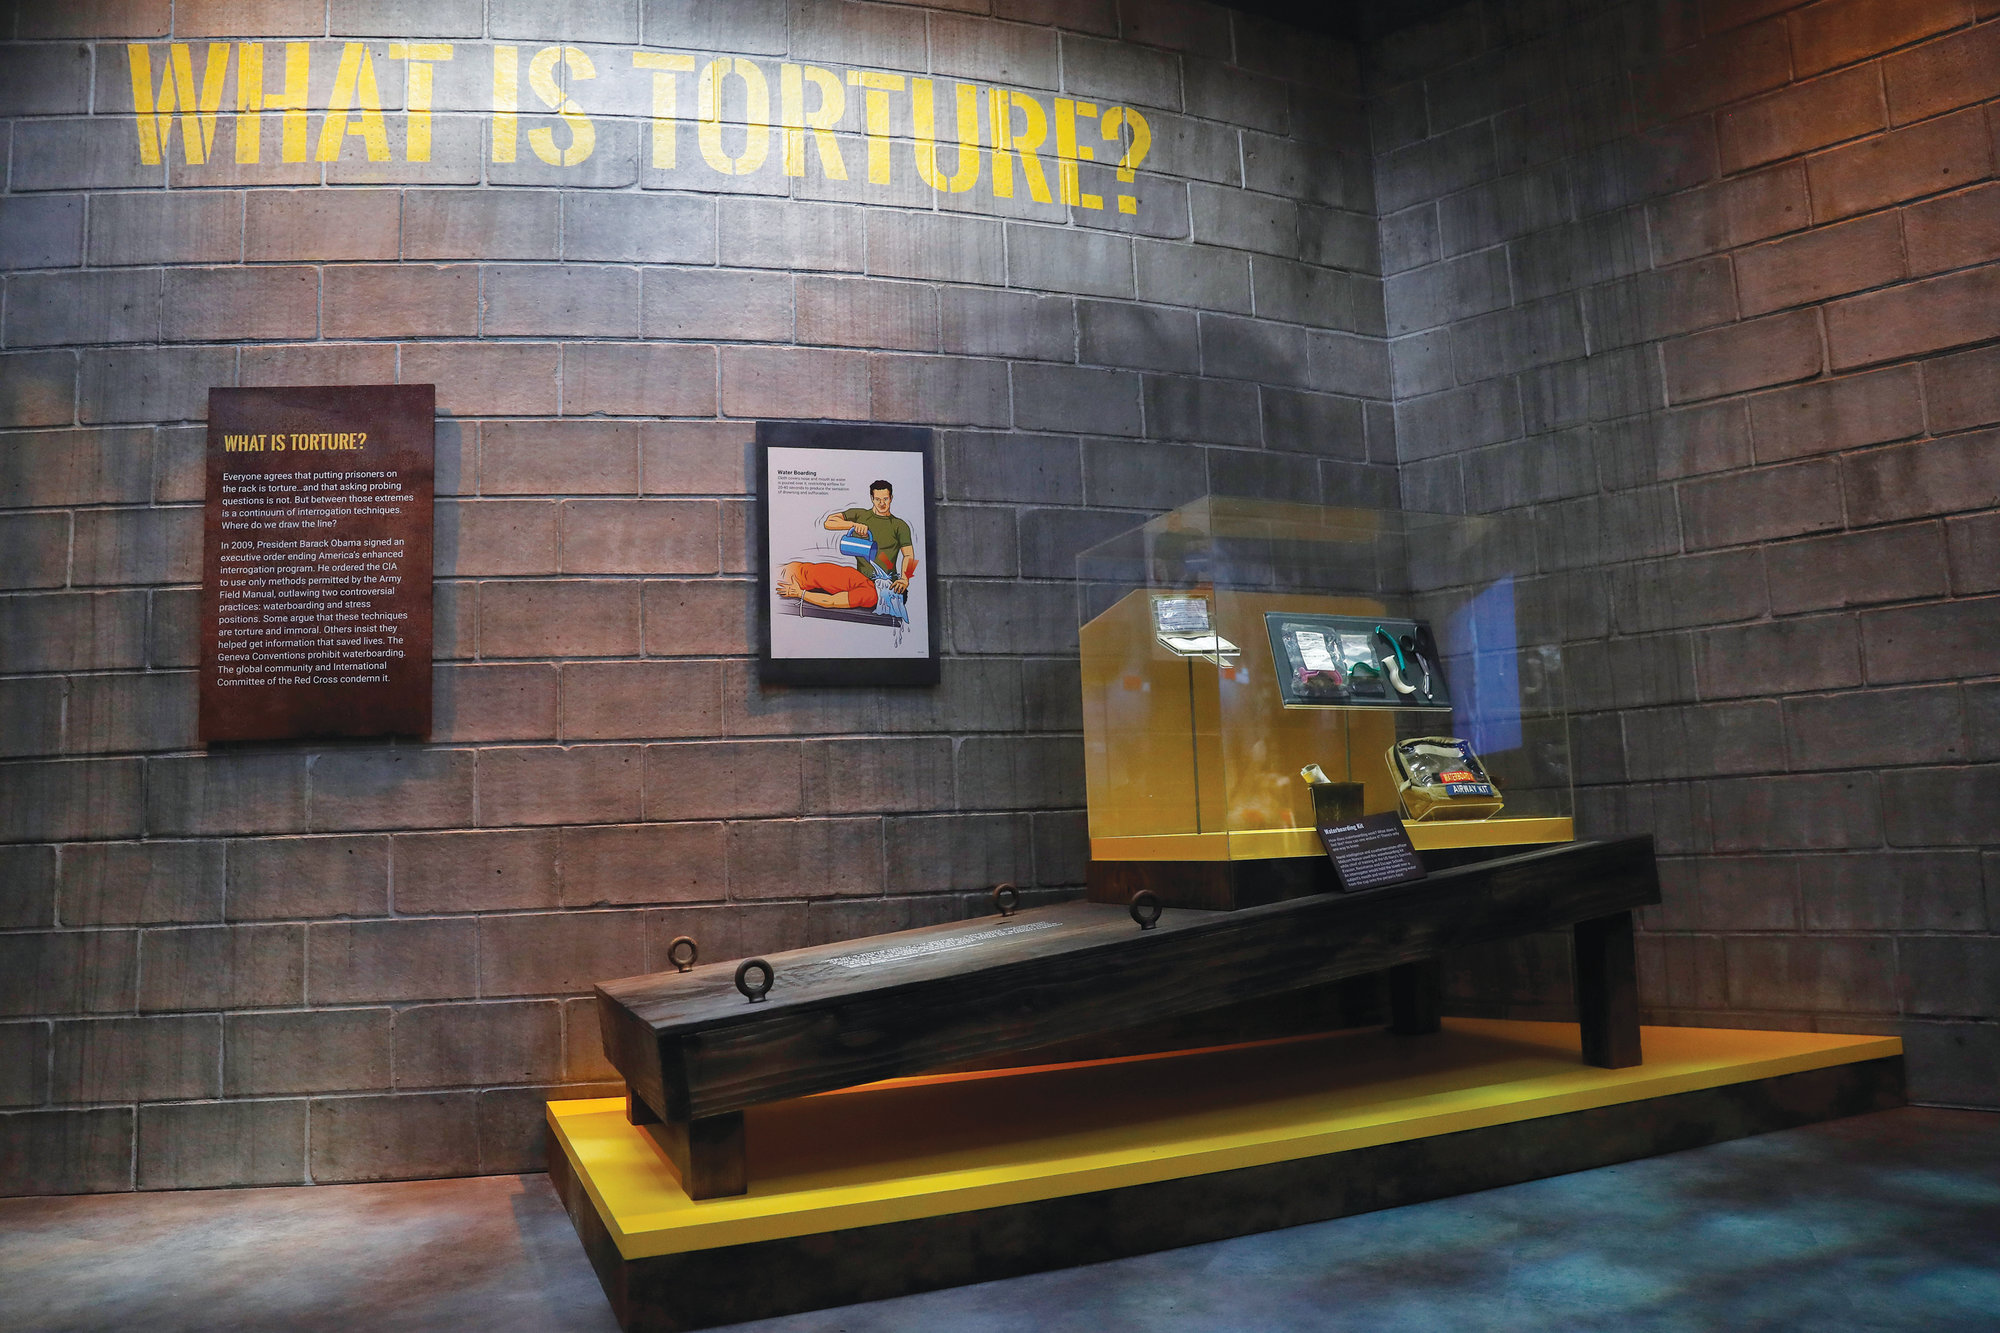 An exhibit on torture includes a section on waterboarding in the new International Spy Museum in Washington.